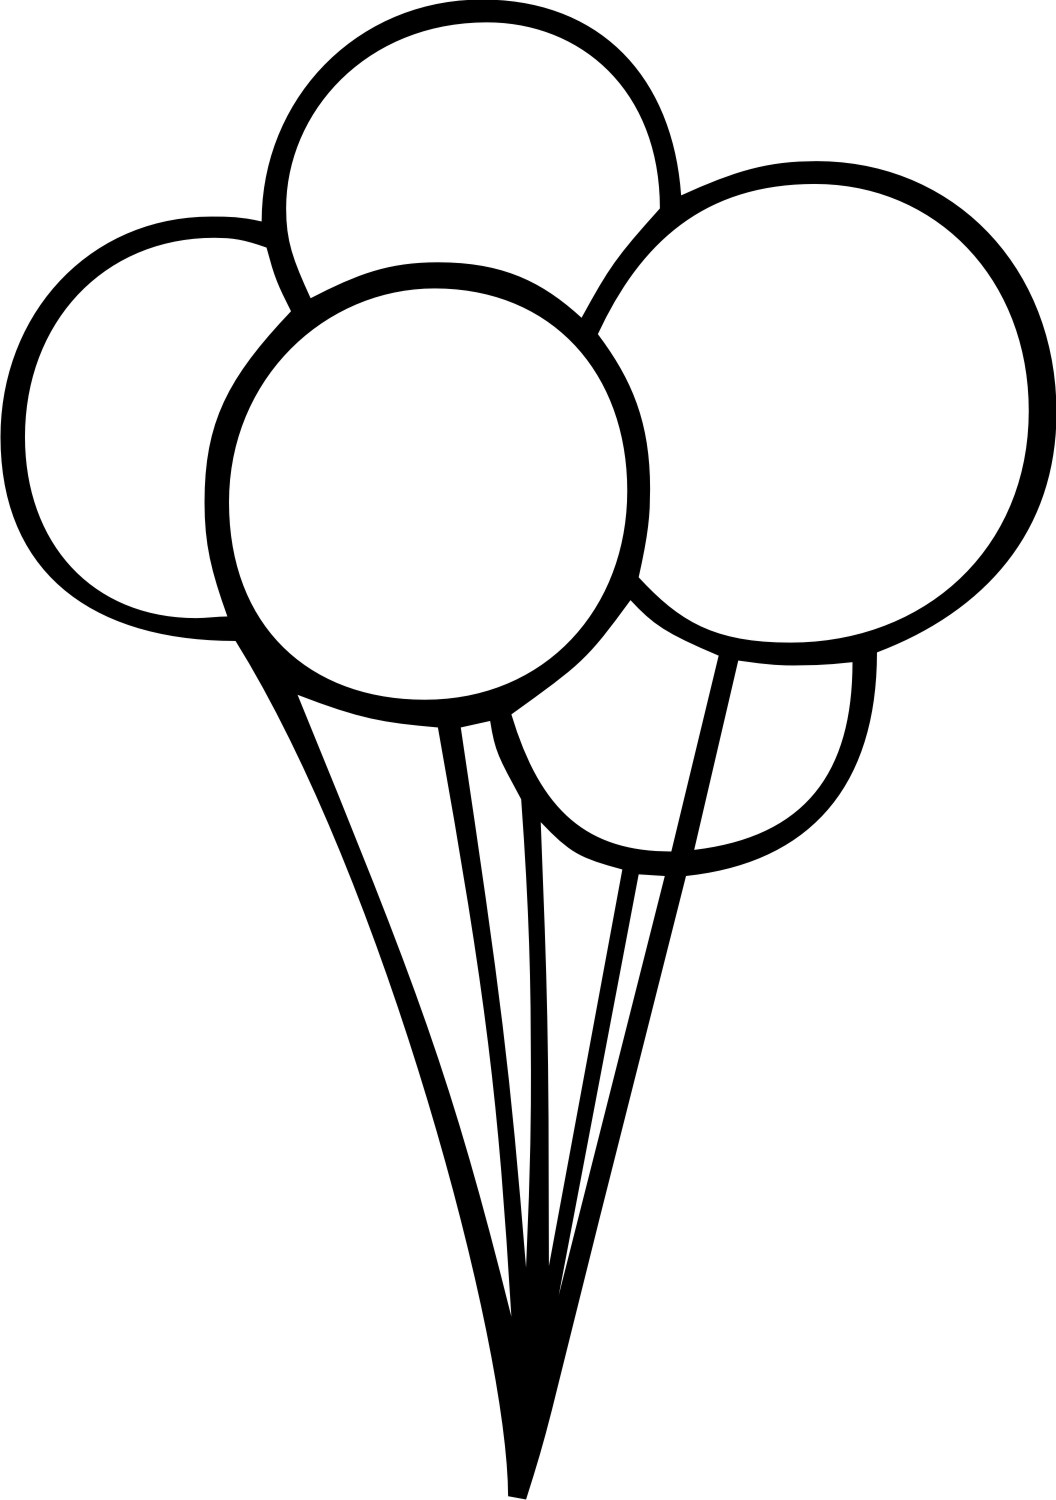 Free Cheerleading Pom Poms Clipart Download Free Clip Art